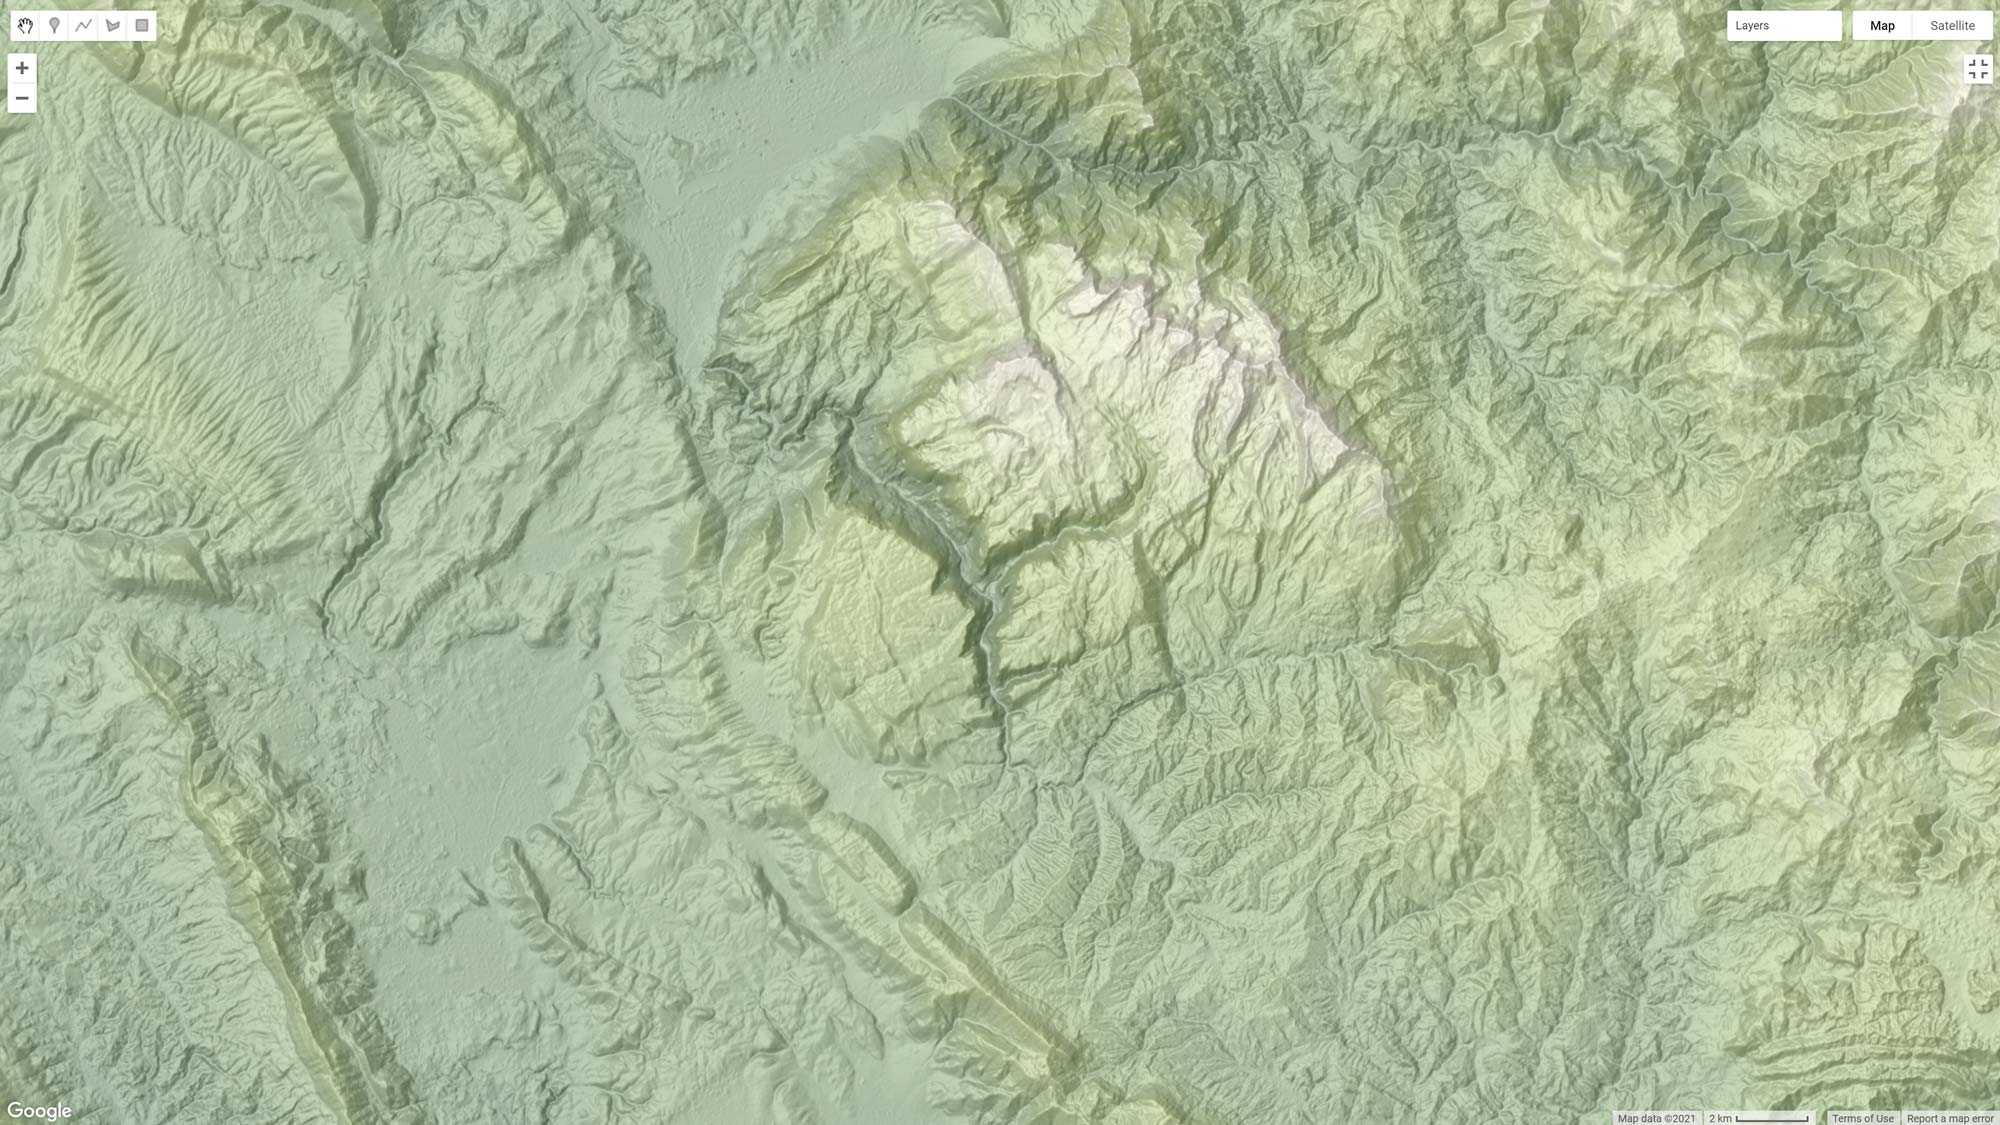 Picture 2: Hypsometric tinting of the Shaded Relief